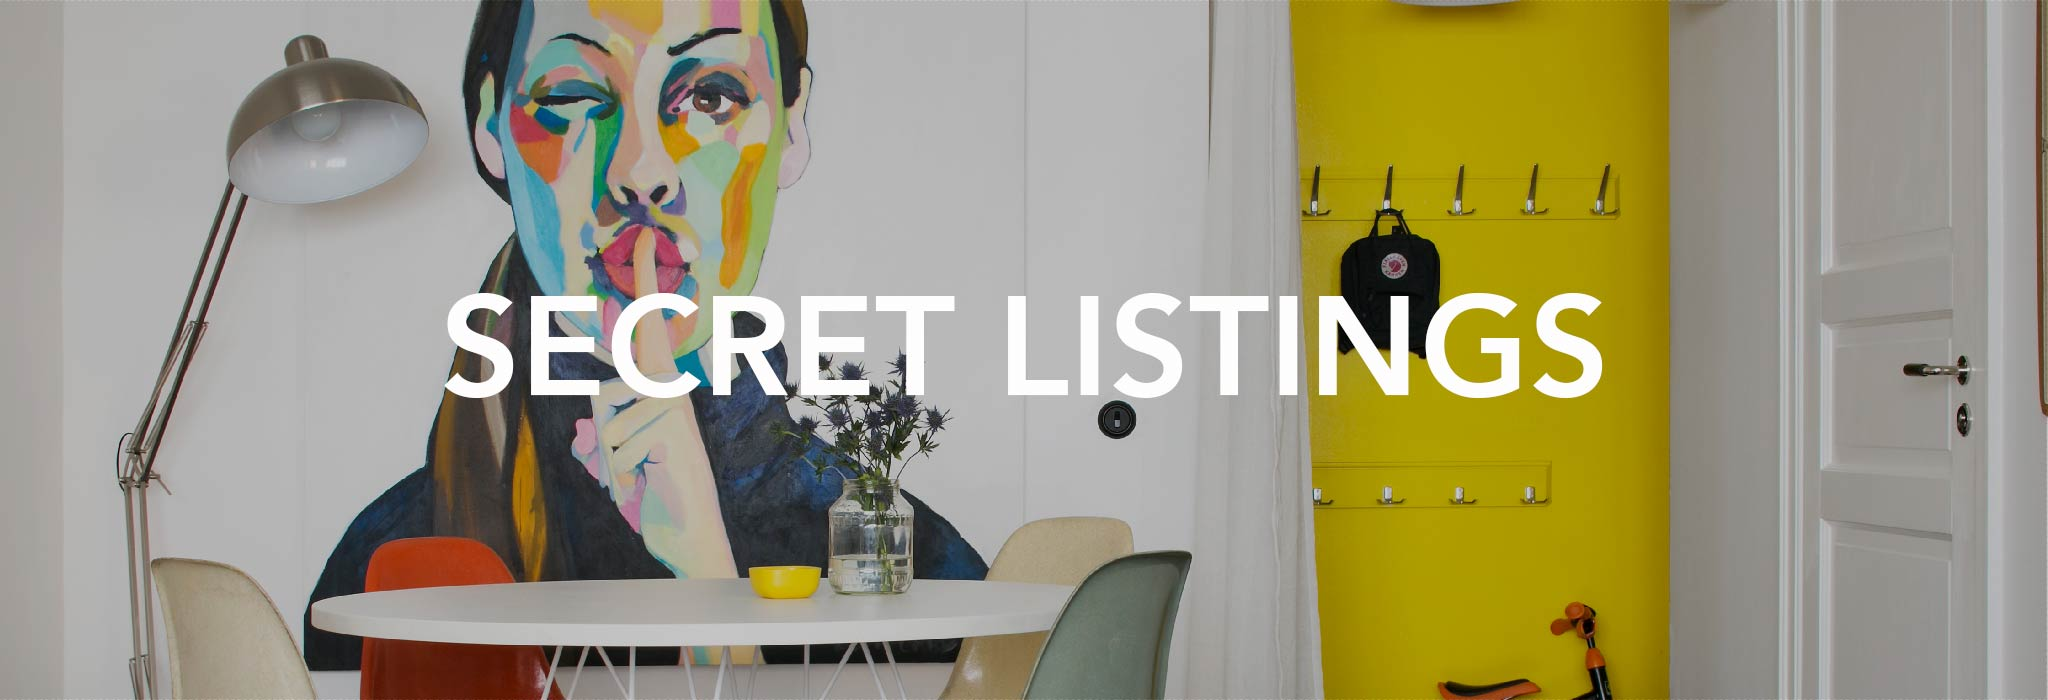 Fantastic Frank Frankfurt - Secret listings